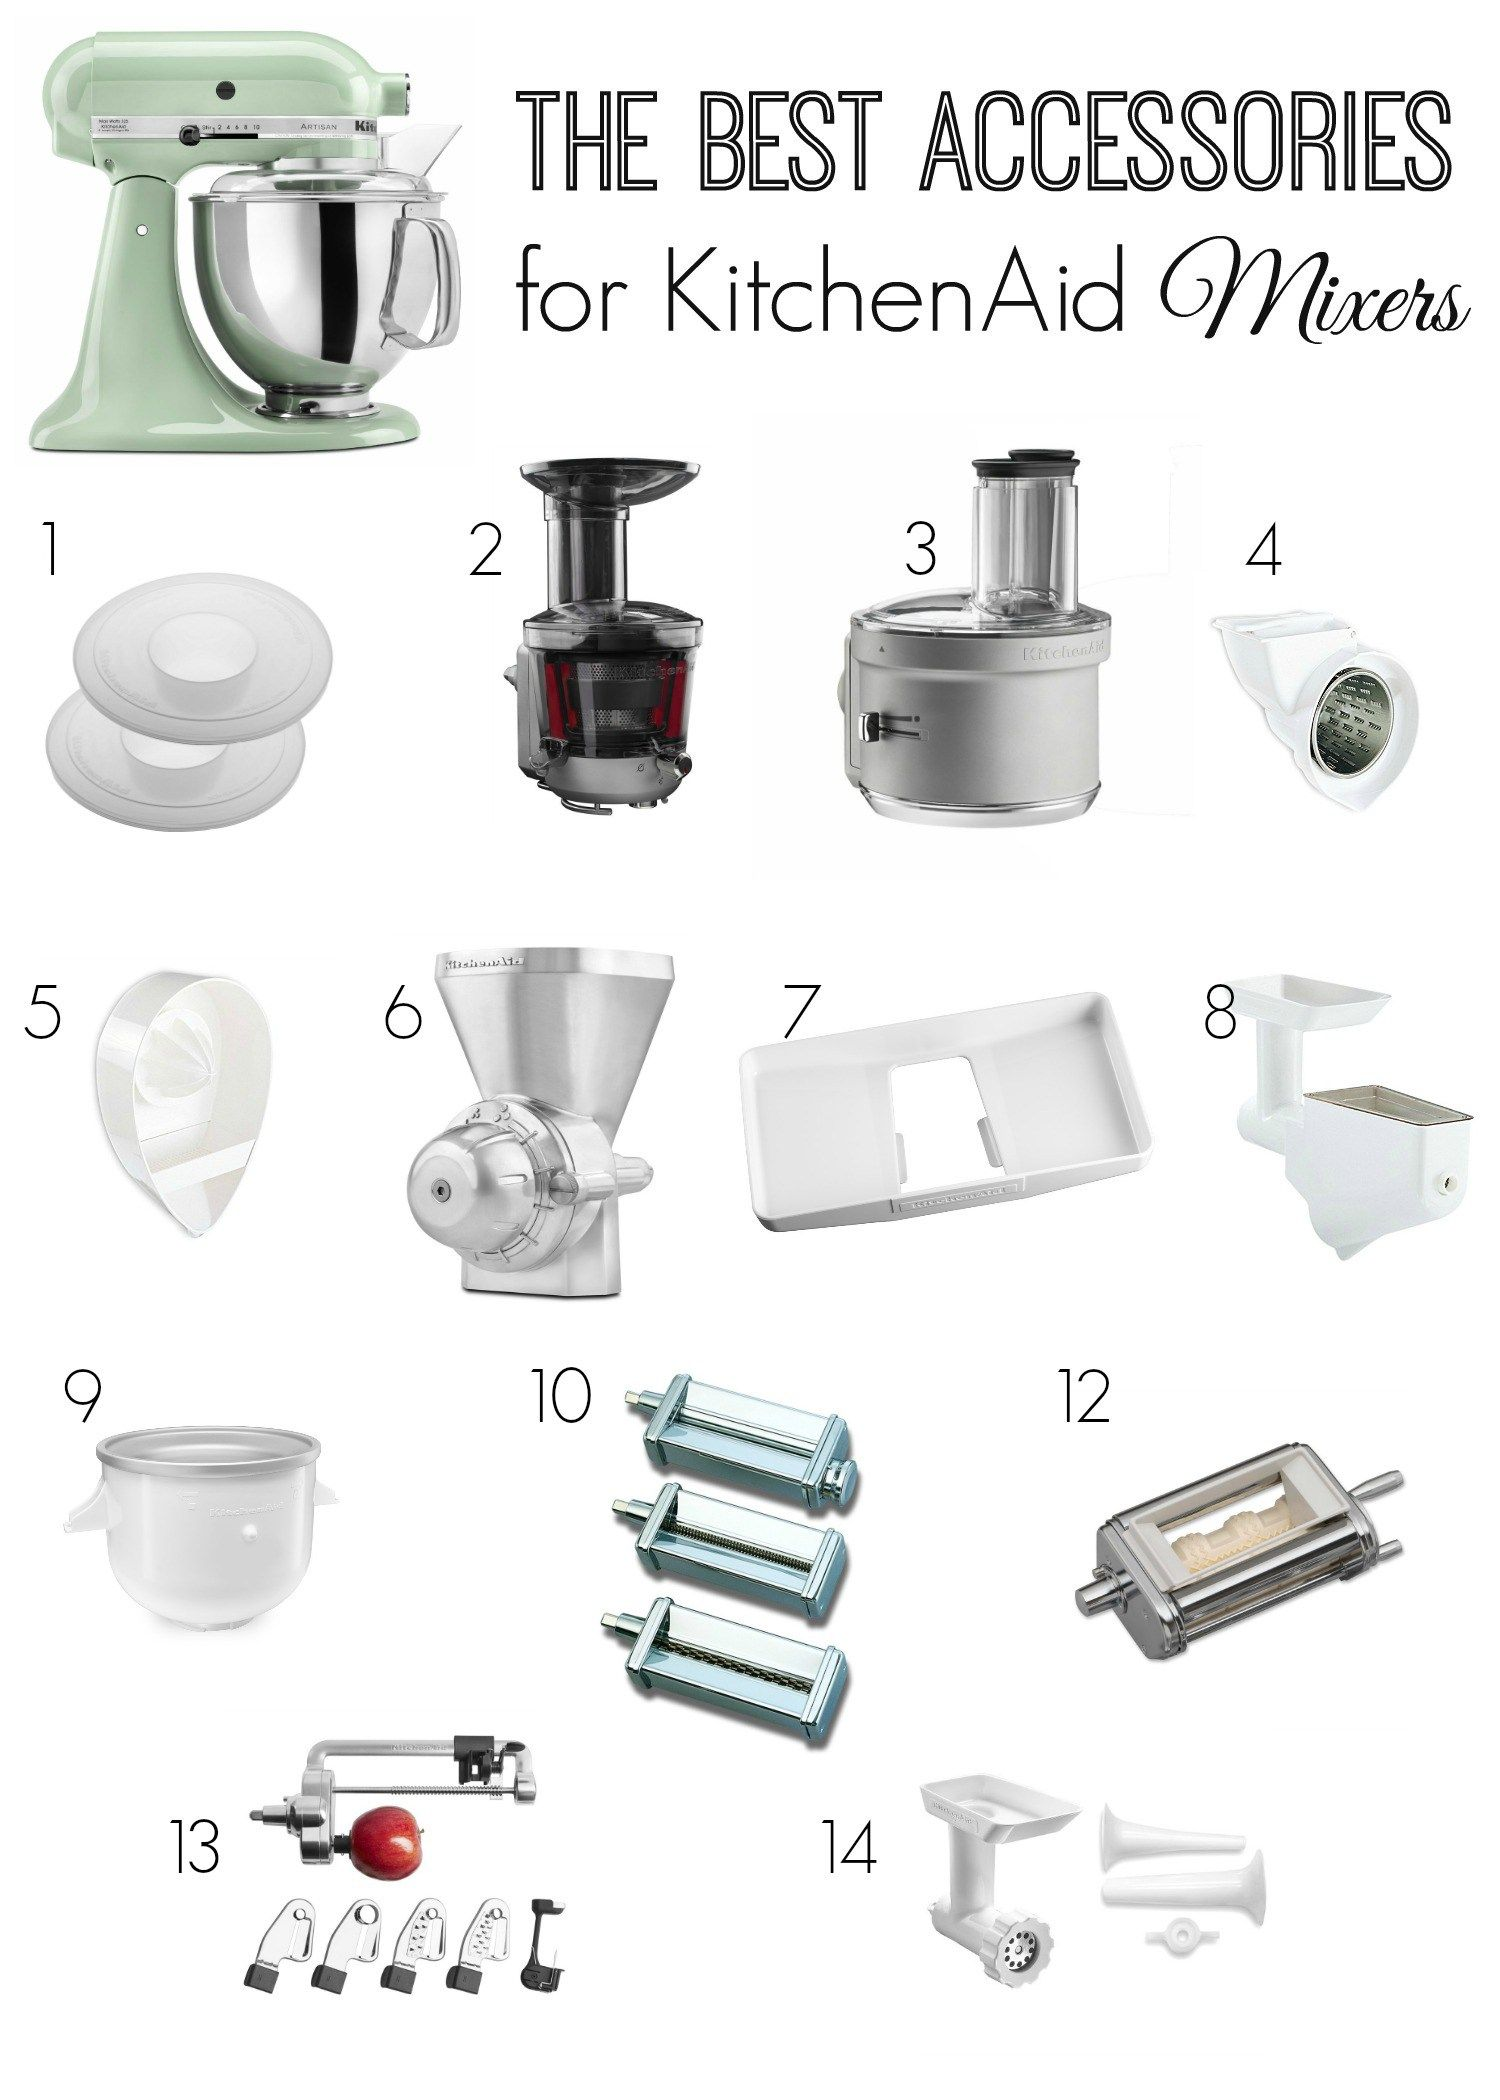 Charmant Best Accessories For KitchenAid Mixers   The Naughty Mommy